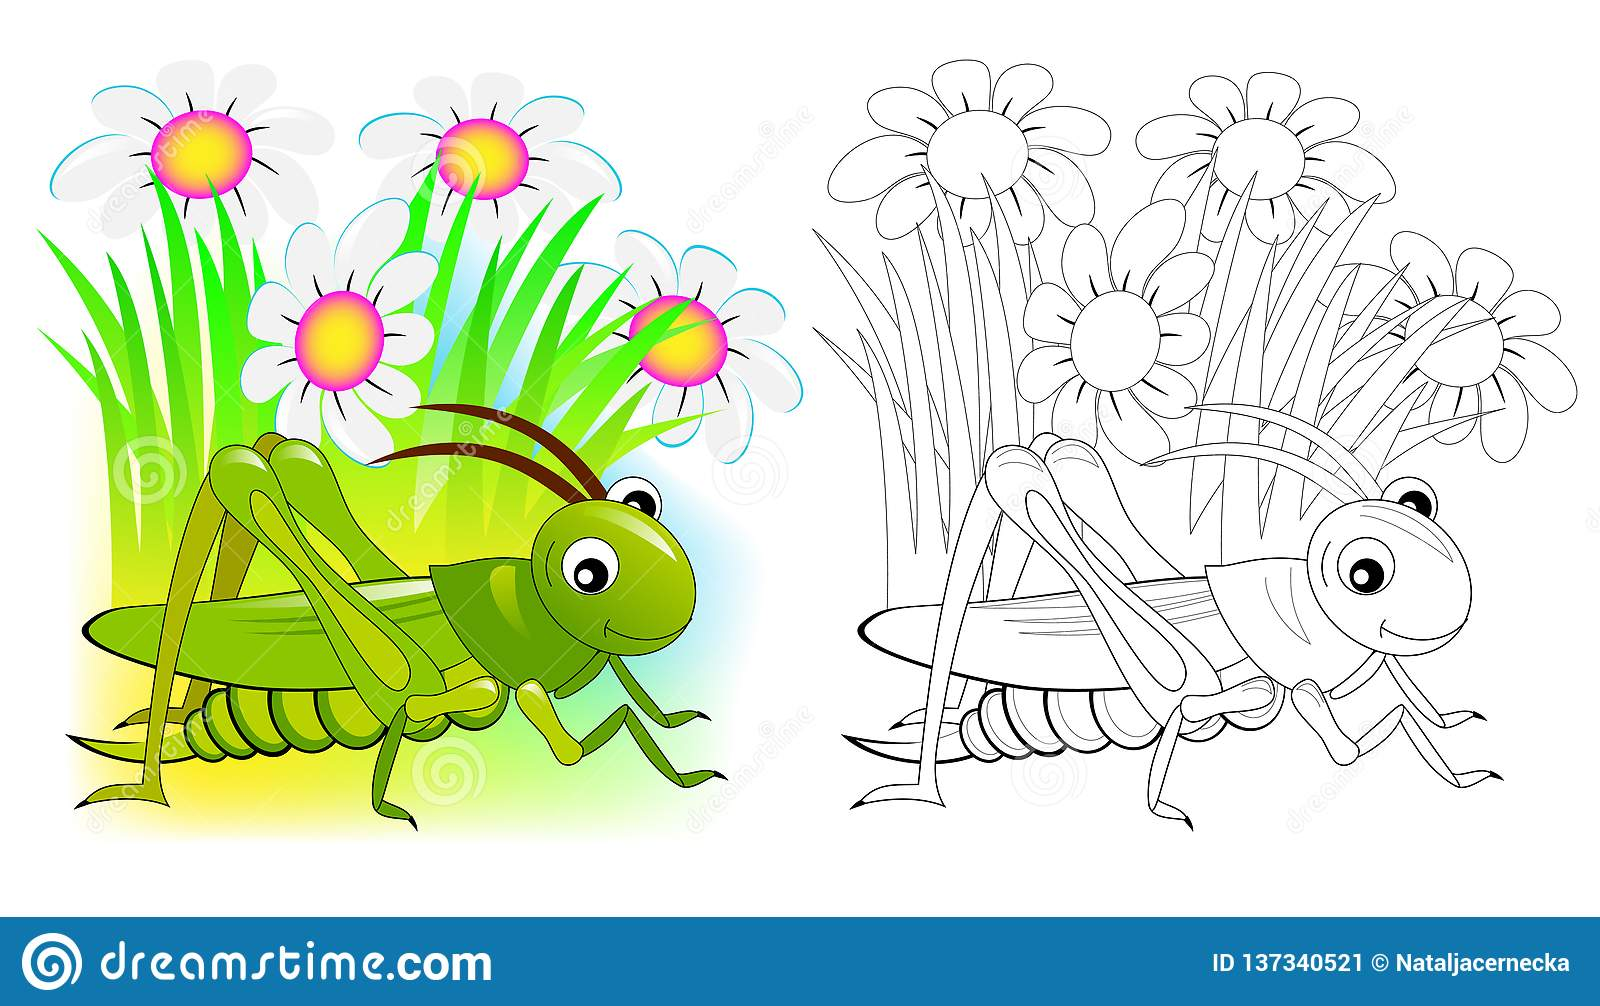 Fantasy Illustration Of Cute Cricket Colorful And Black